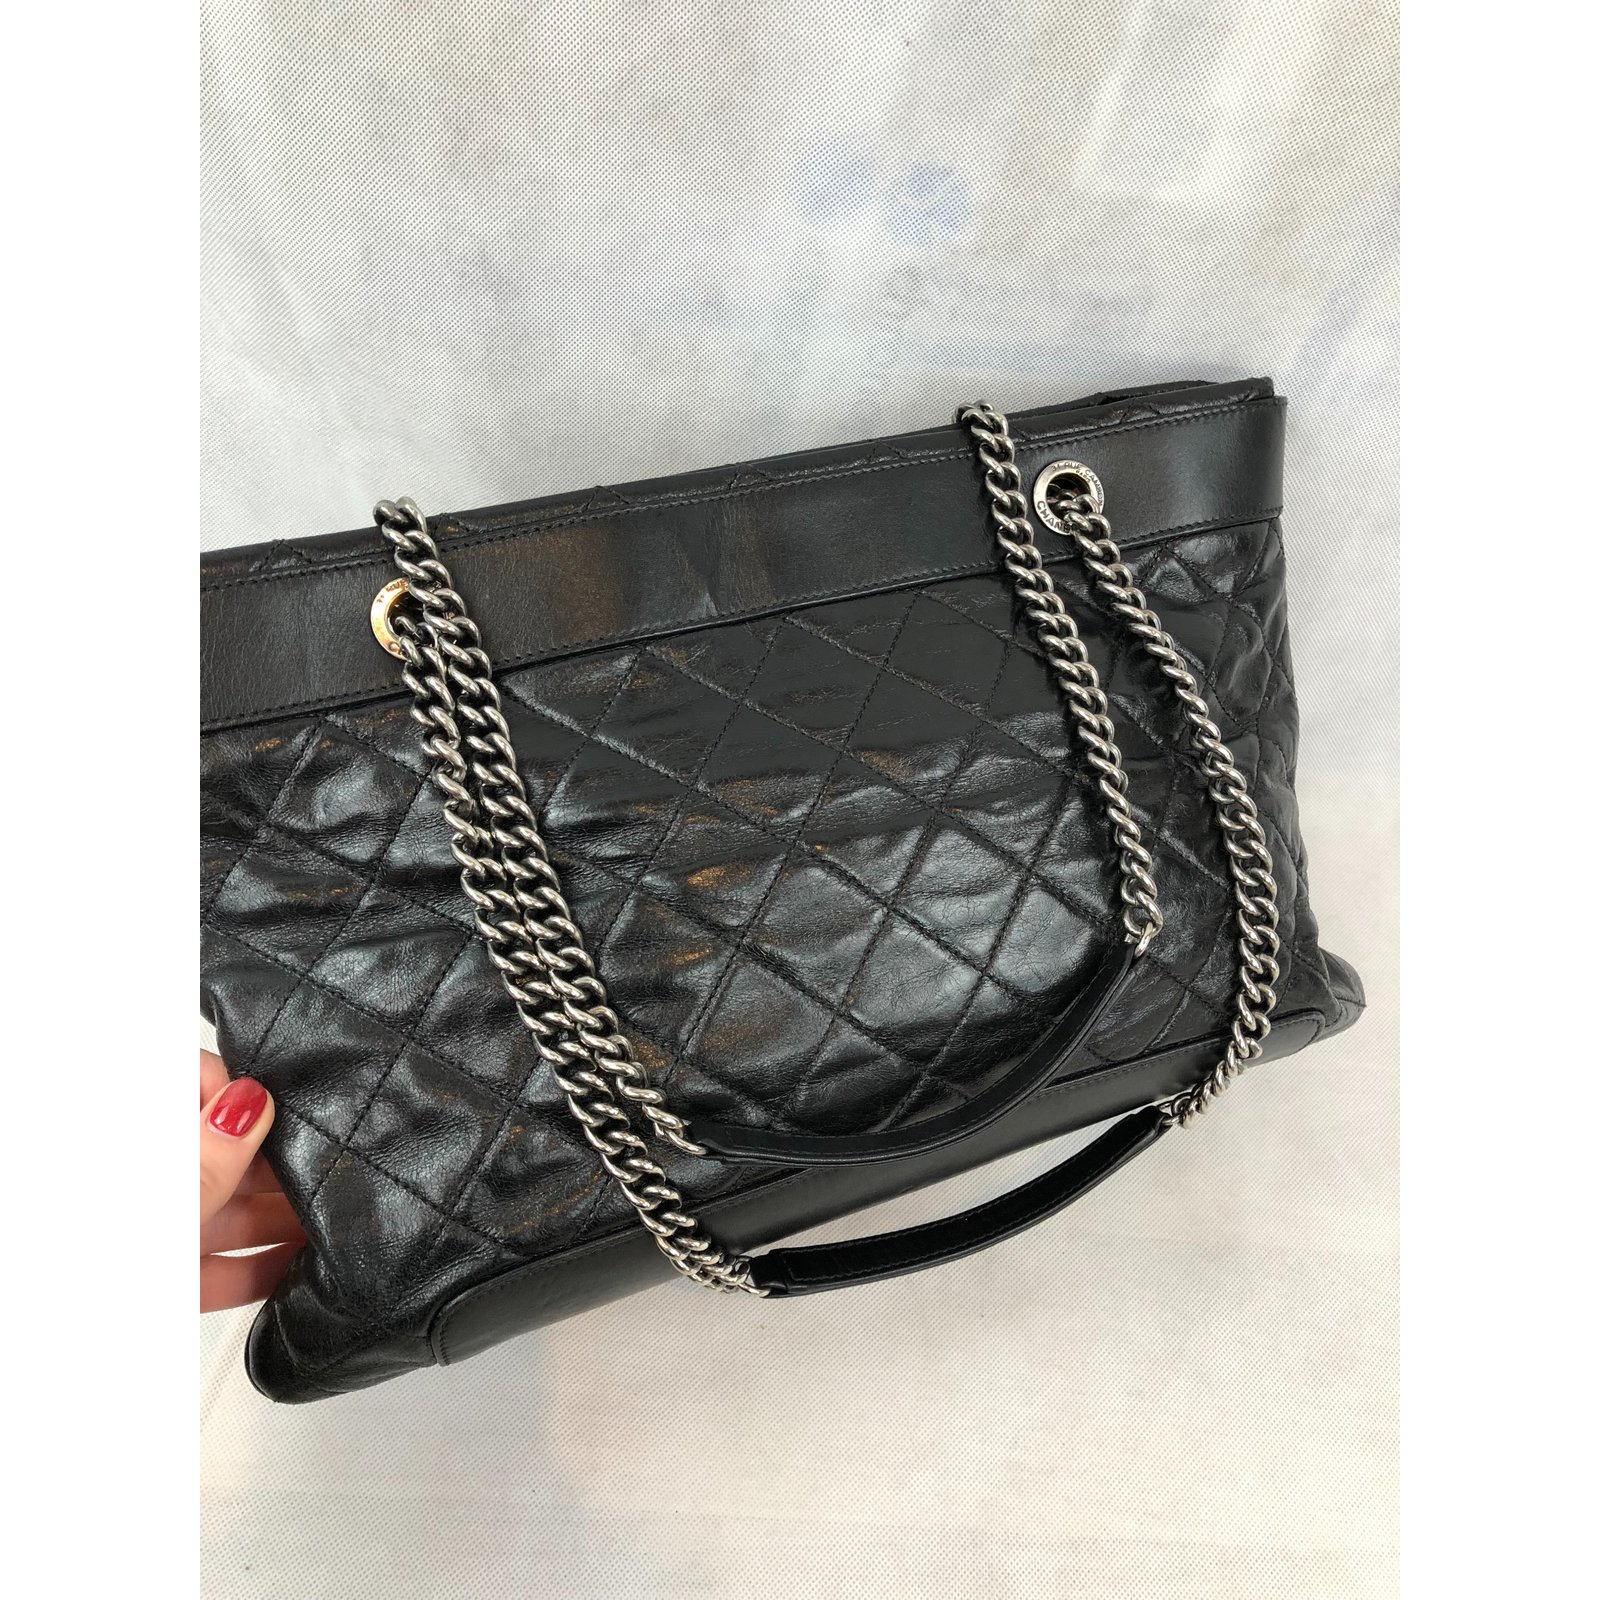 Facebook · Pin This. Chanel Handbags Handbags Leather Black ref.78325 5c5bcd89f103f